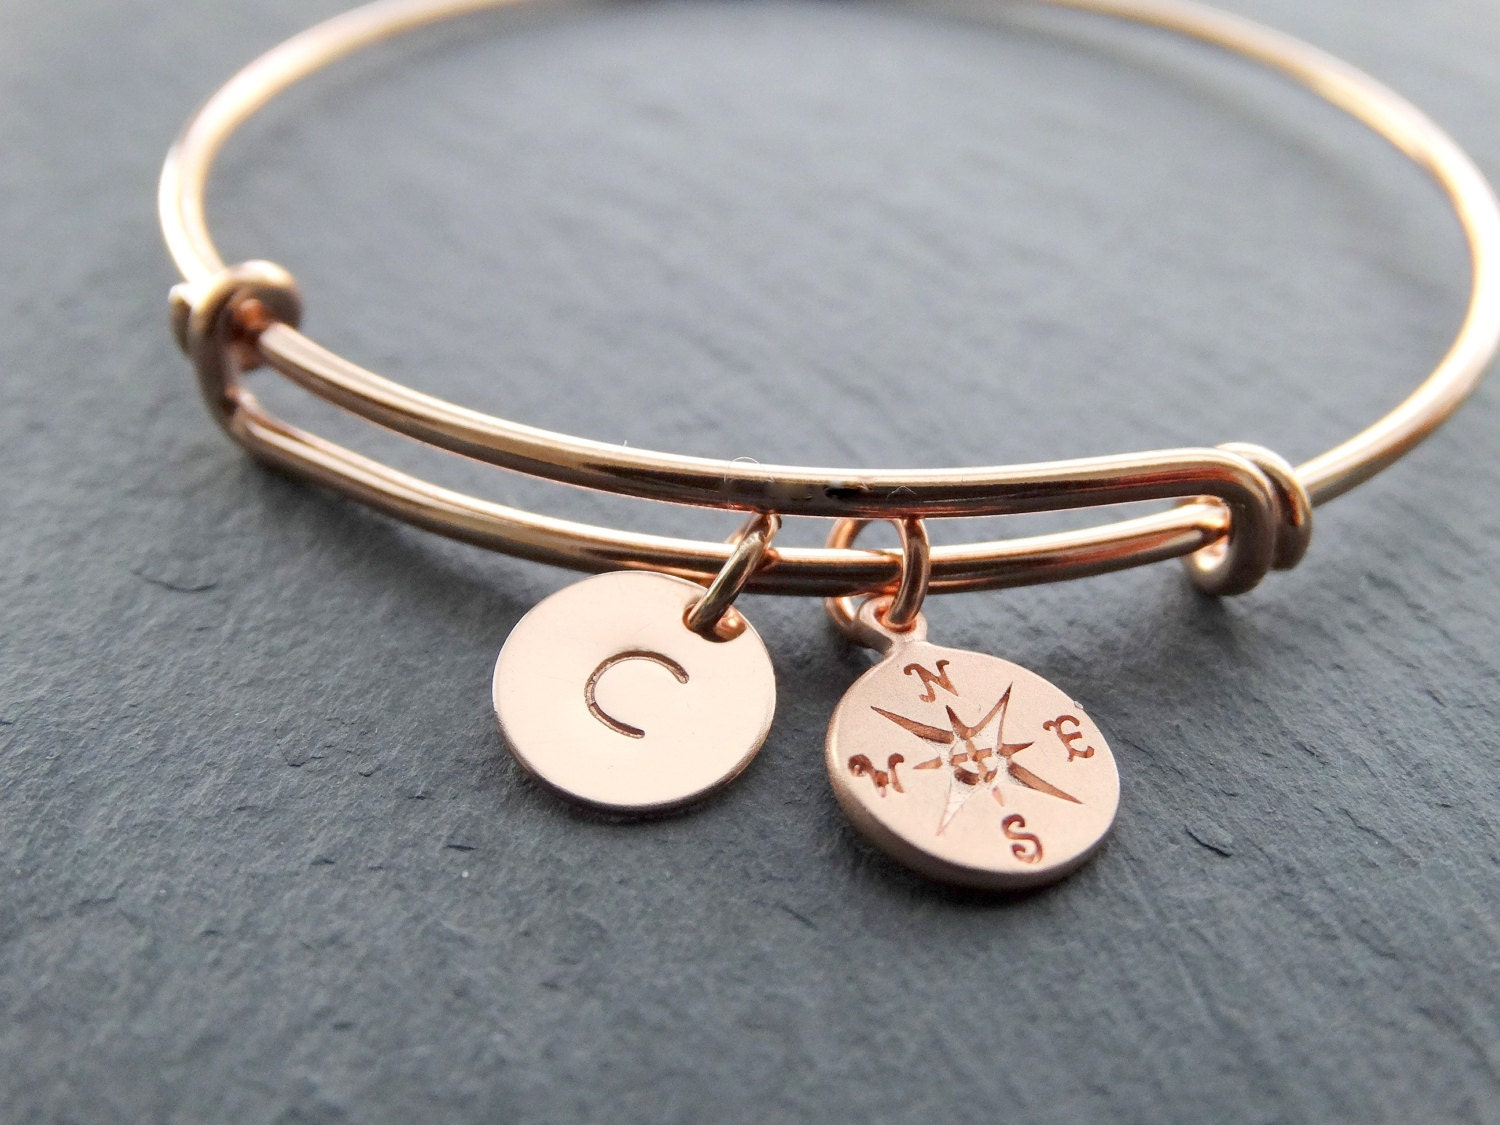 loading bangle charm ebay gold compass iii authentic s and rose image bangles is alex ani itm